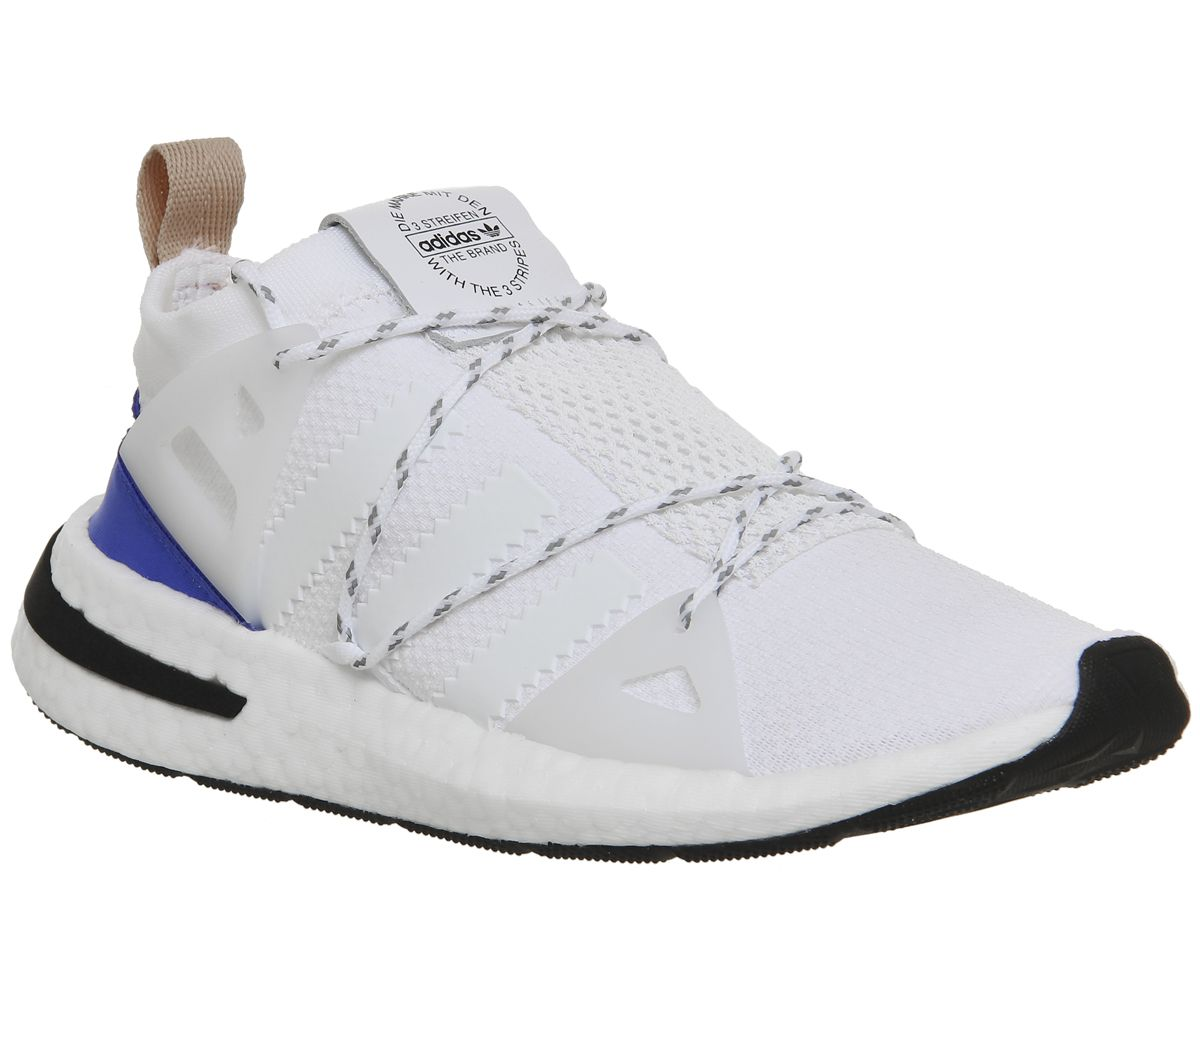 online retailer 65b38 0850a adidas Arkyn Trainers White Ash Pearl F - Hers trainers